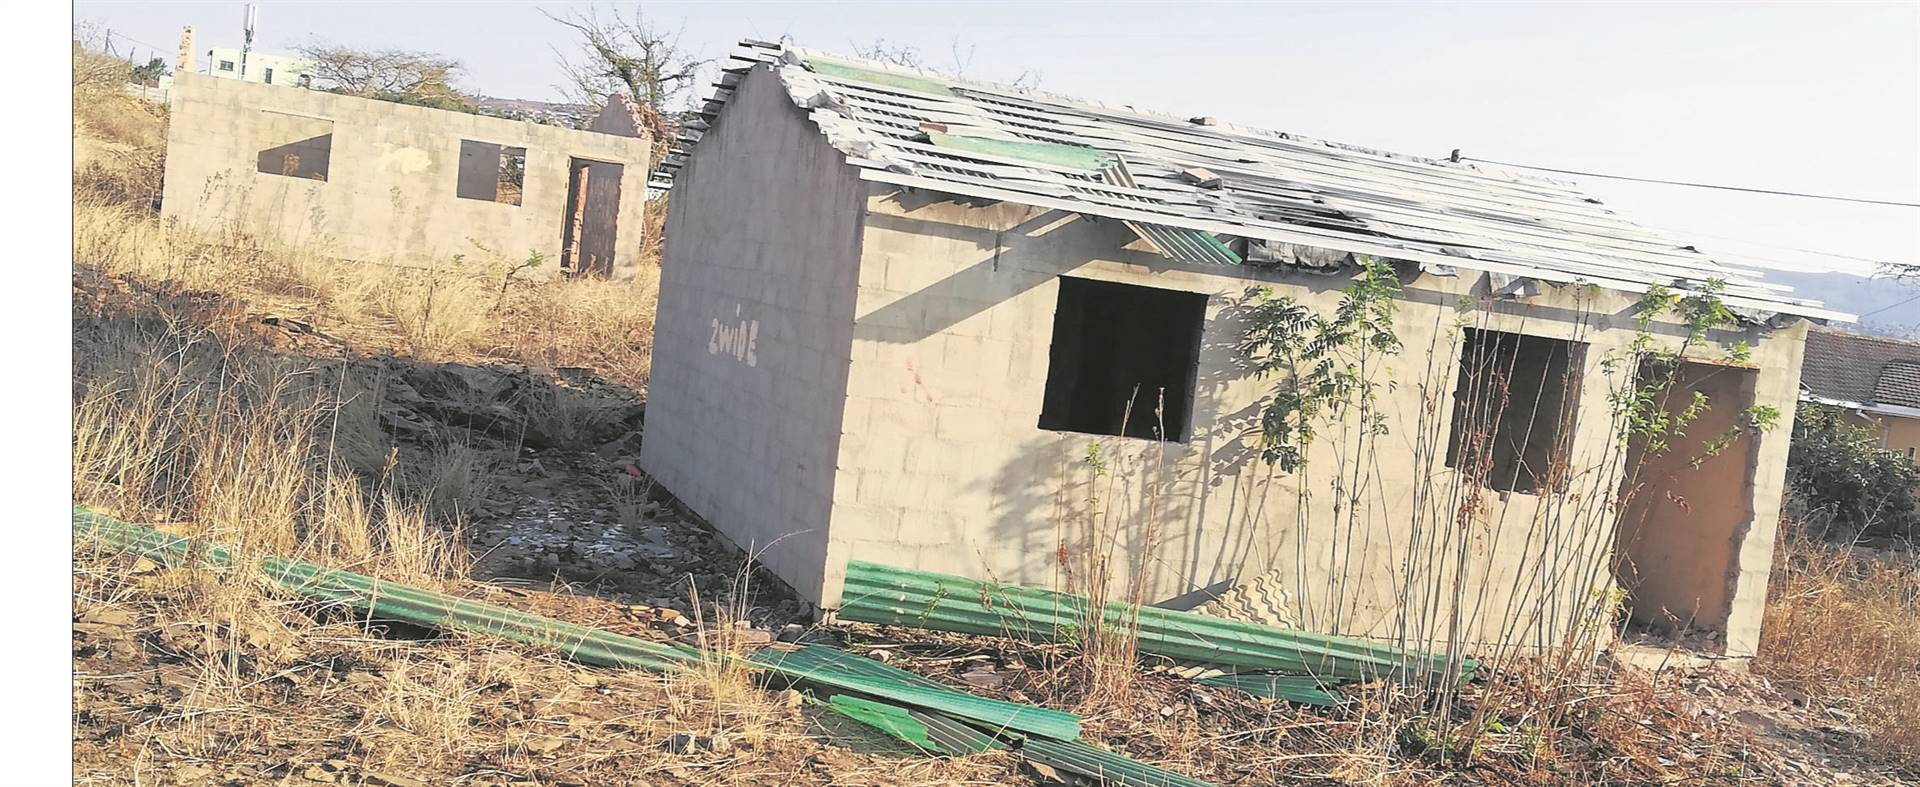 One of the unfinished RDP houses in Imbali Unit 2. Residents claim that criminals and drug addicts use the unfinished houses to hide from the community.PHOTO: lethiwe makhanya